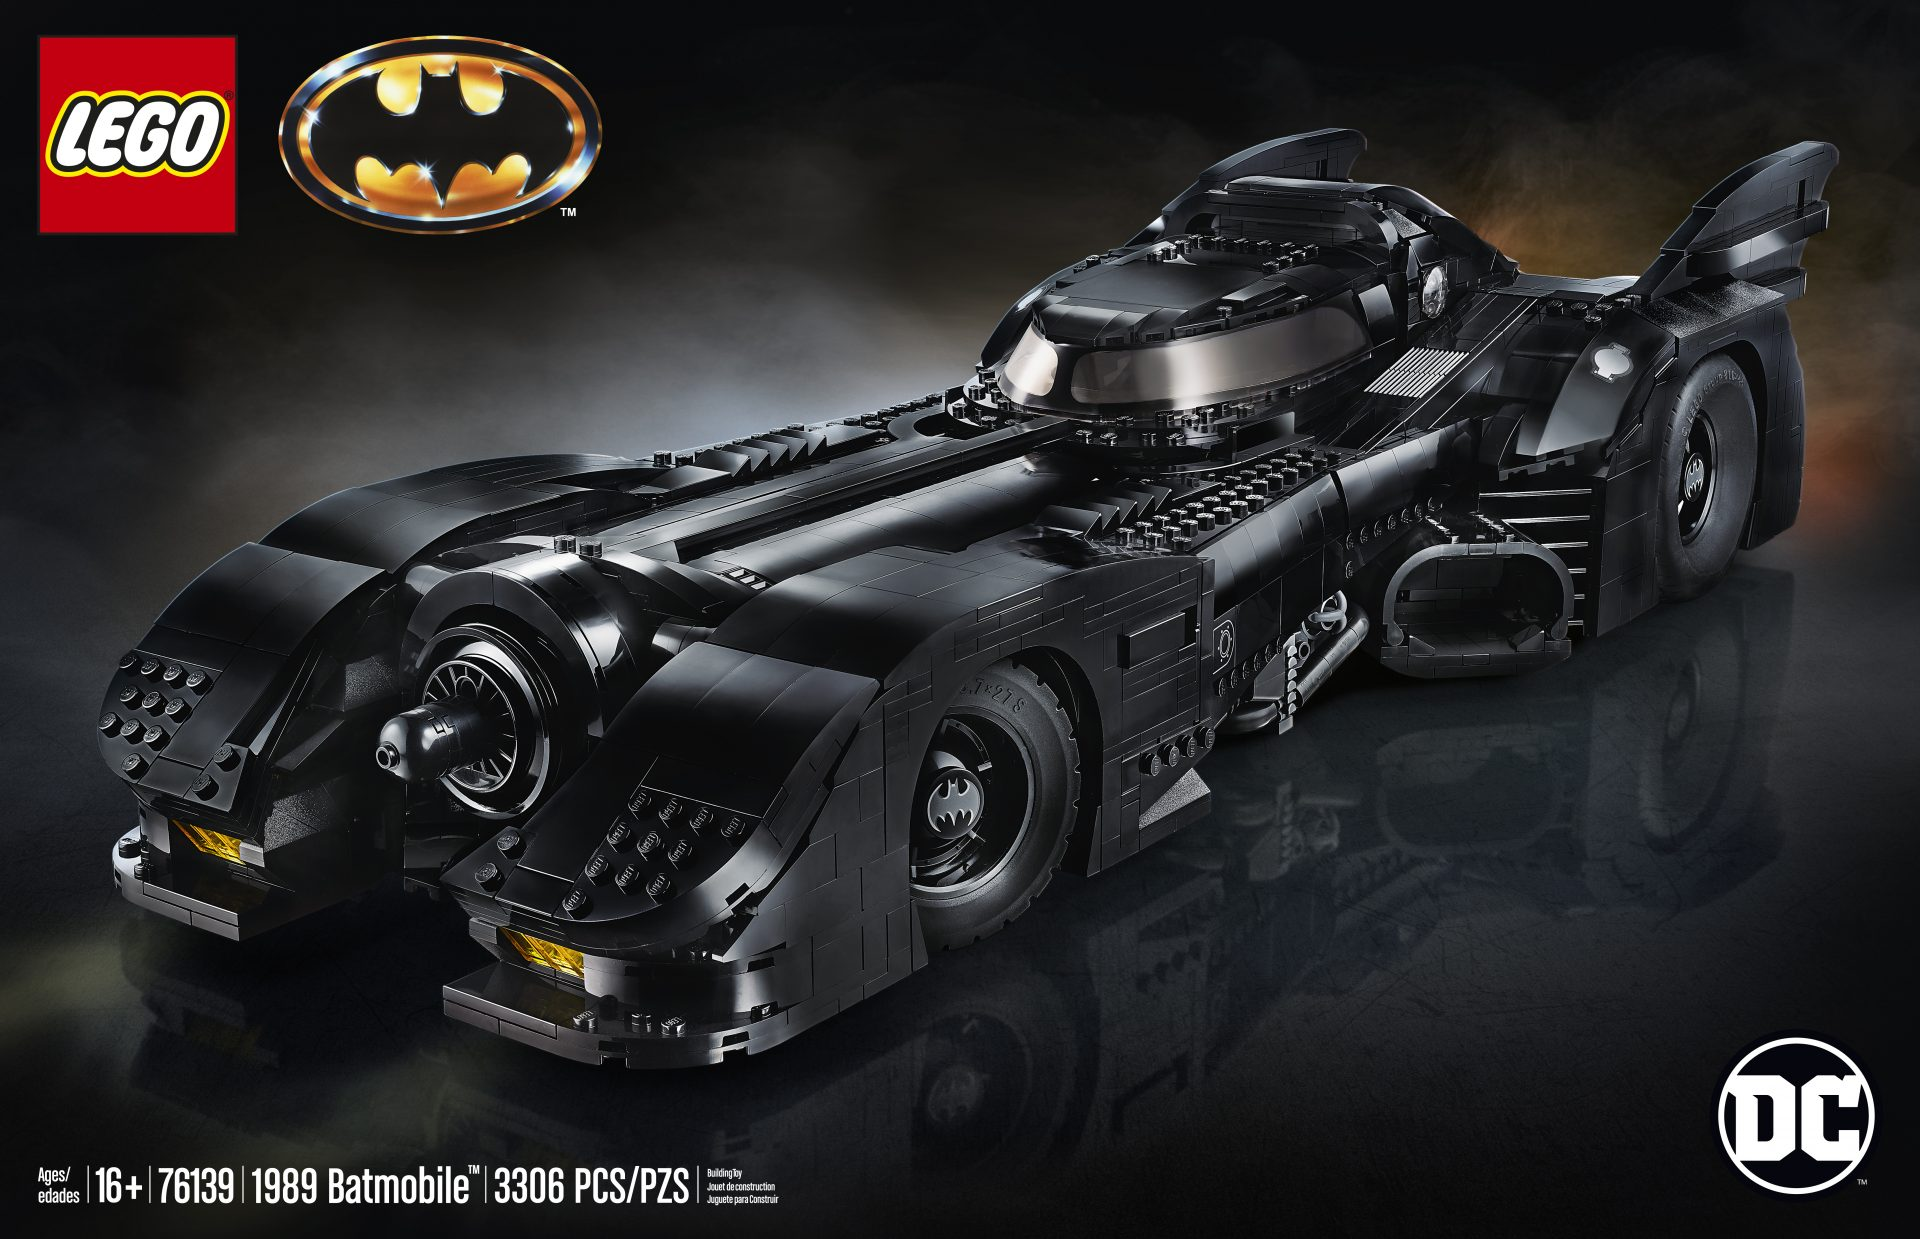 The box art for the new LEGO version of the Tim Burton Batmobile from the 1989 film.